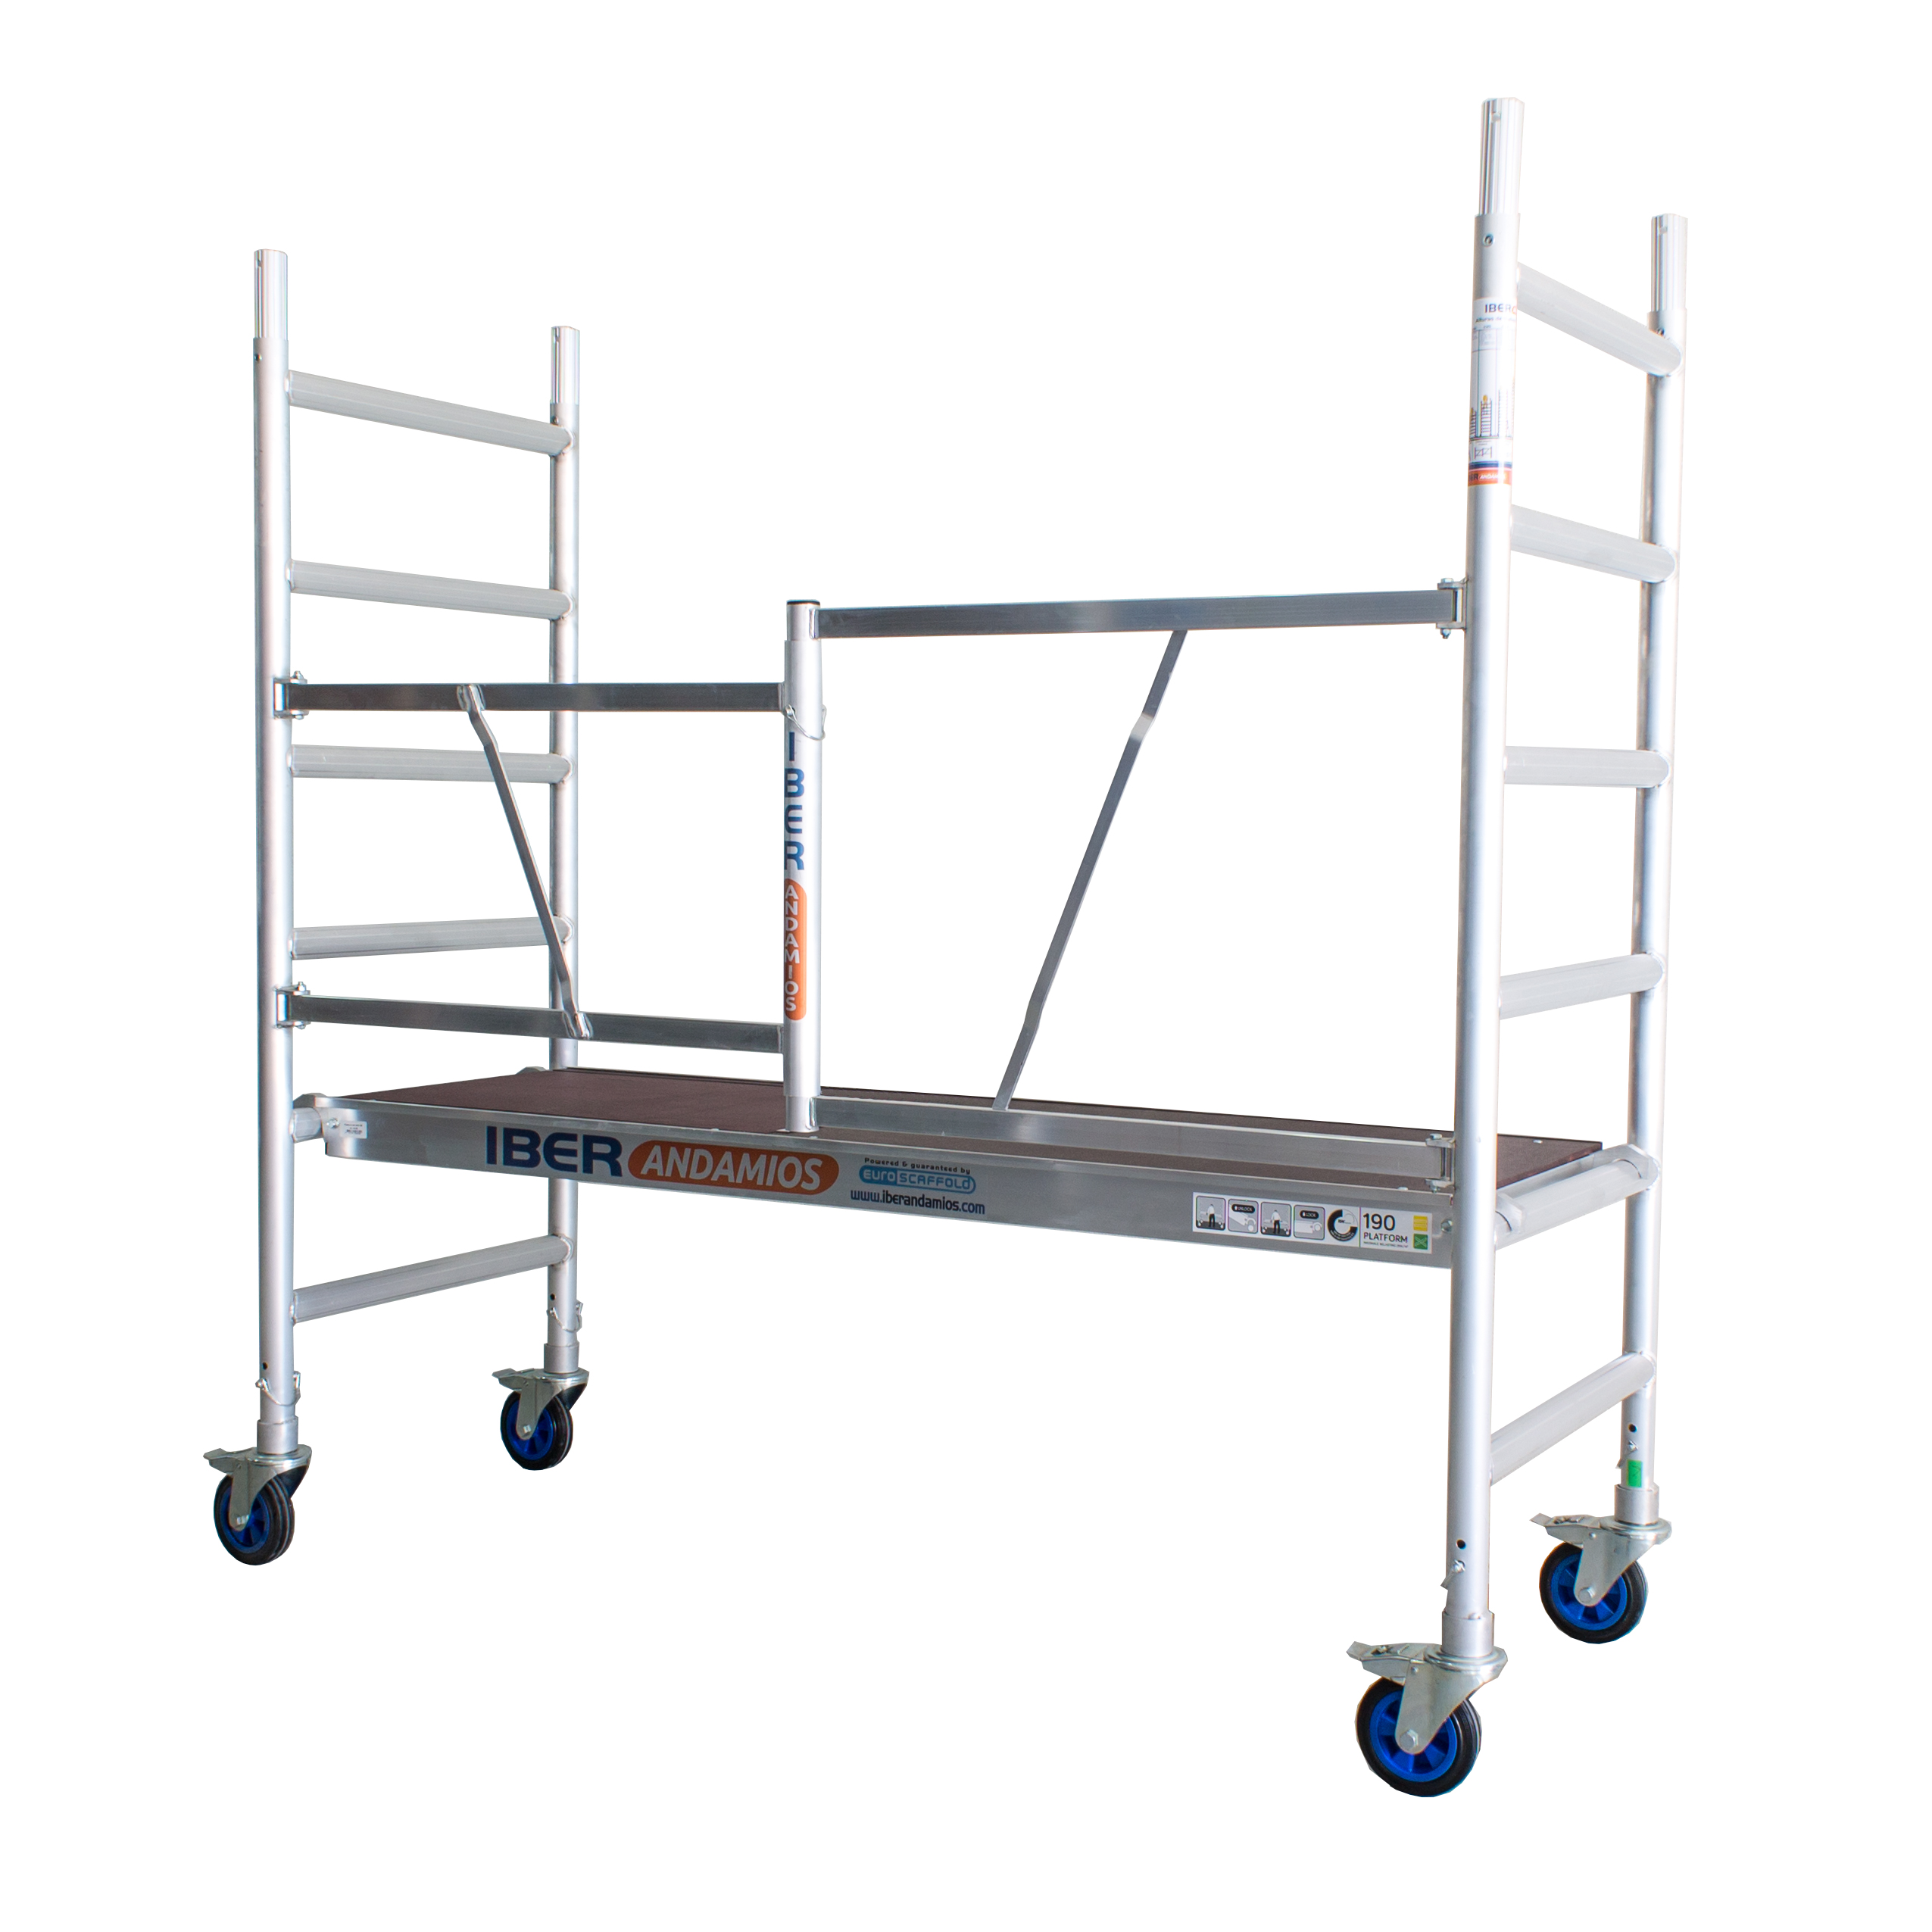 Scaffold Folding In Aluminum CT26 With Platform 190x75